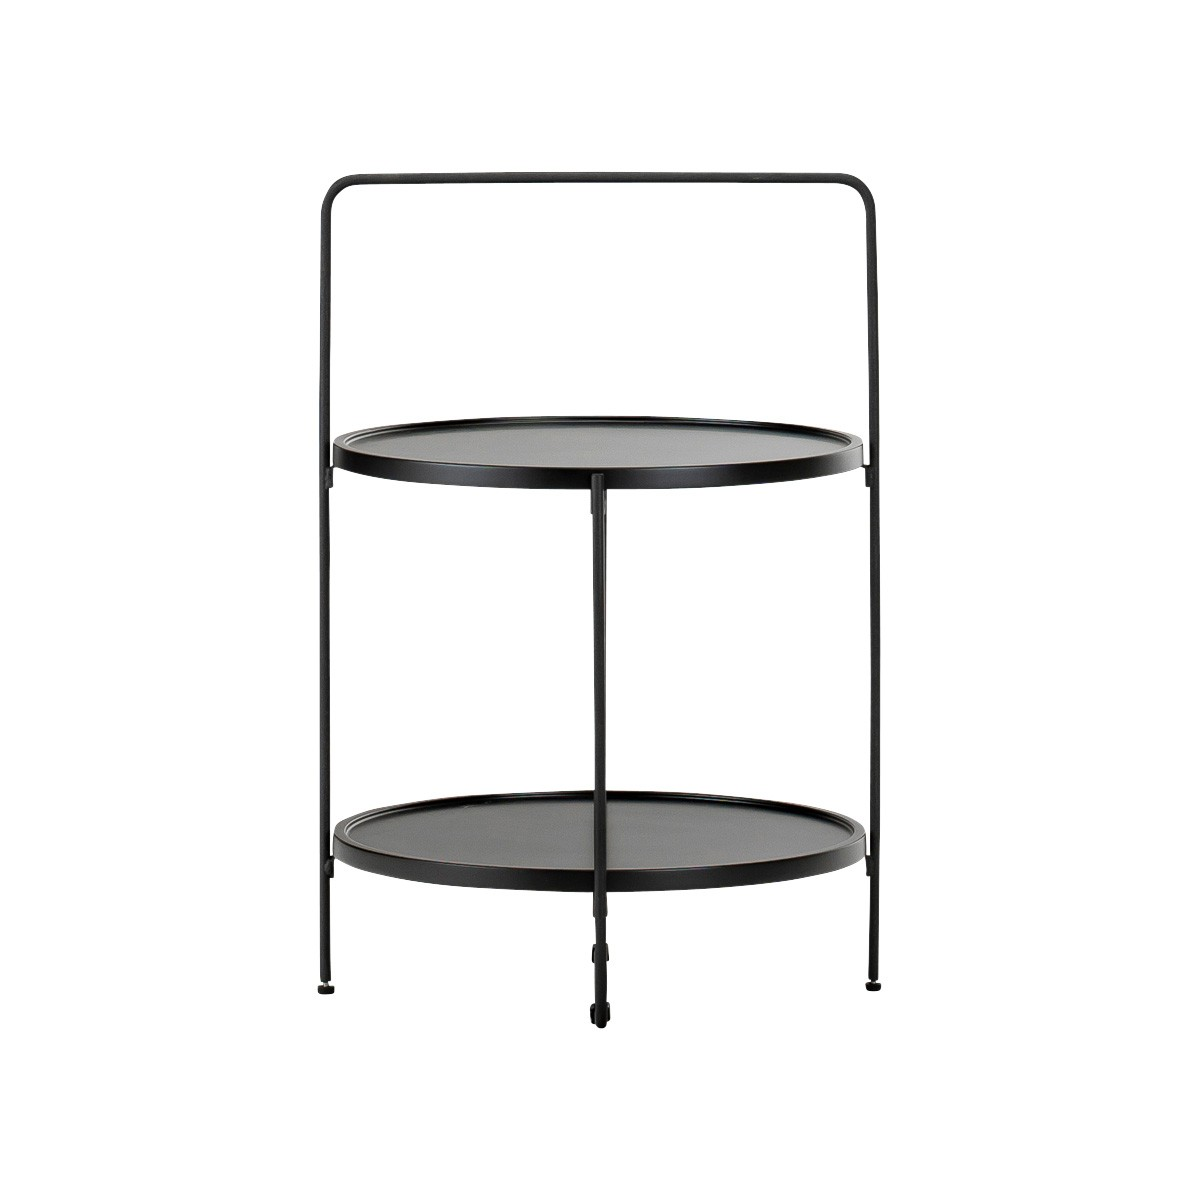 Tae Wood & Stainless Steel Round Tray Top Side Table, Black